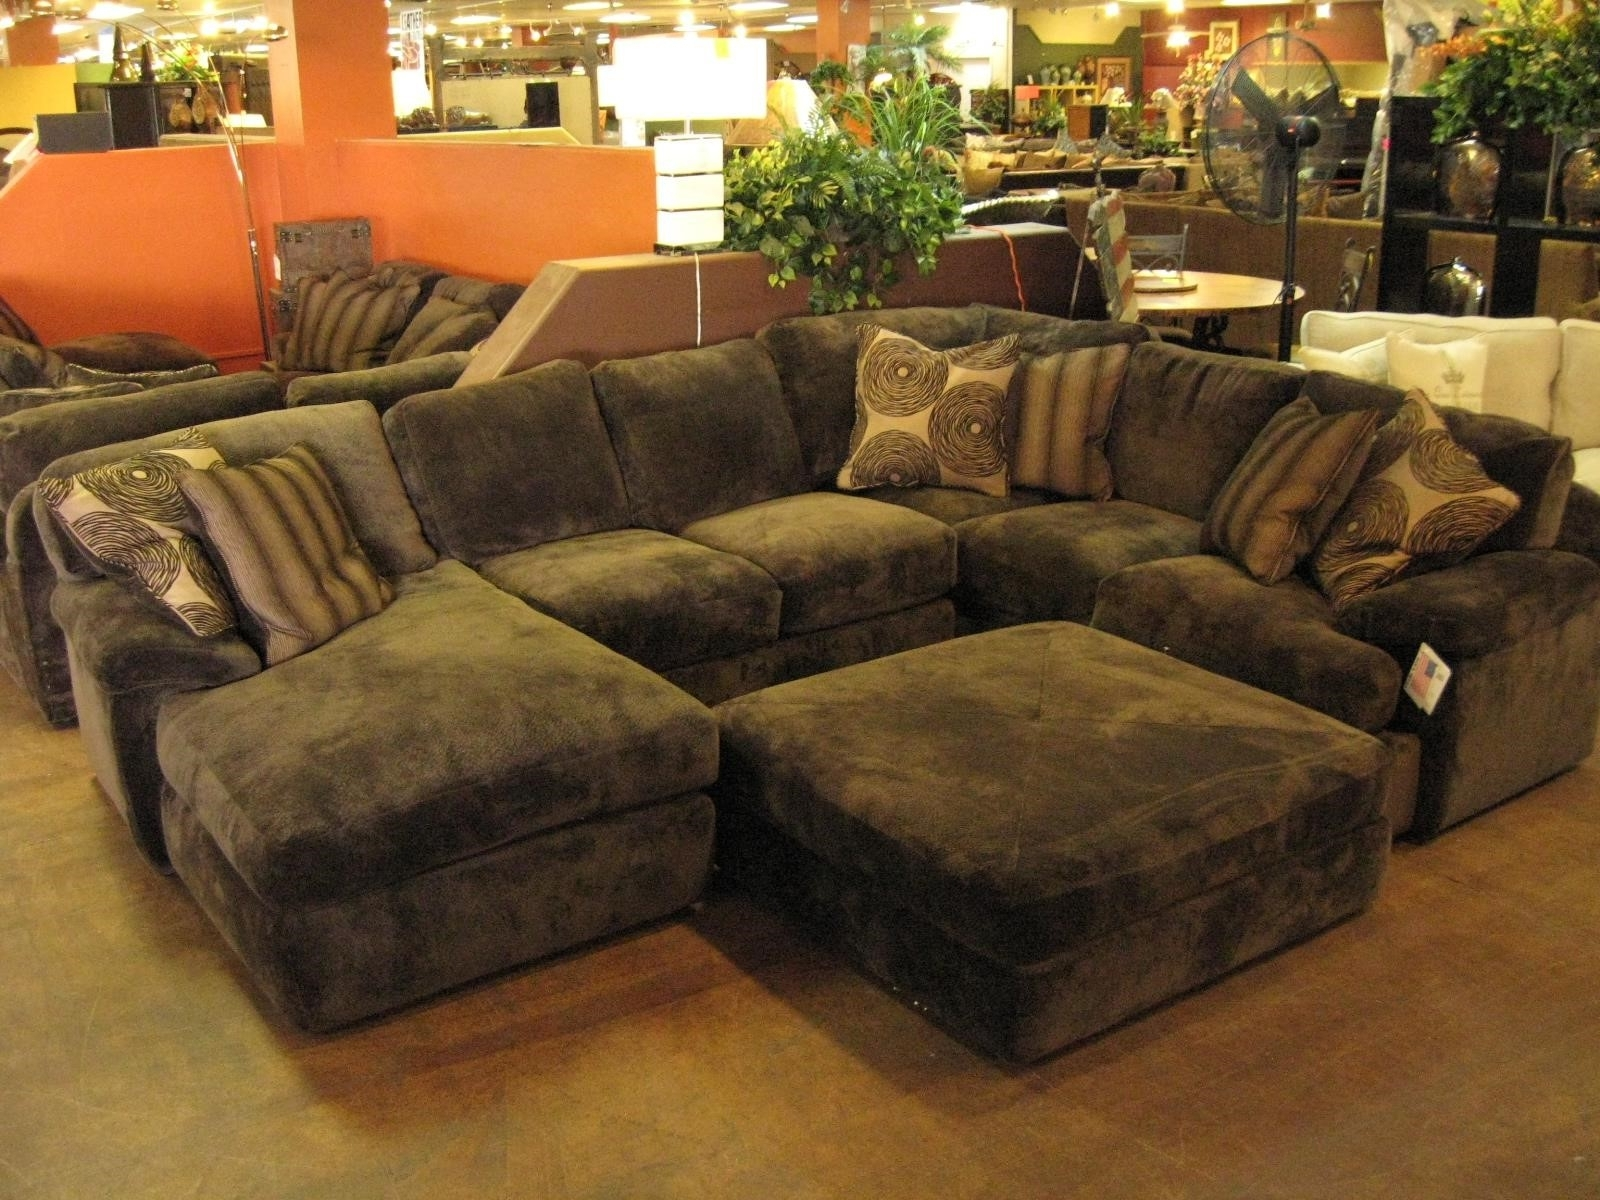 Sofa : Magnificent Large Sectional Sofa With Chaise Reclining With Recent Plush Sectional Sofas (View 15 of 15)